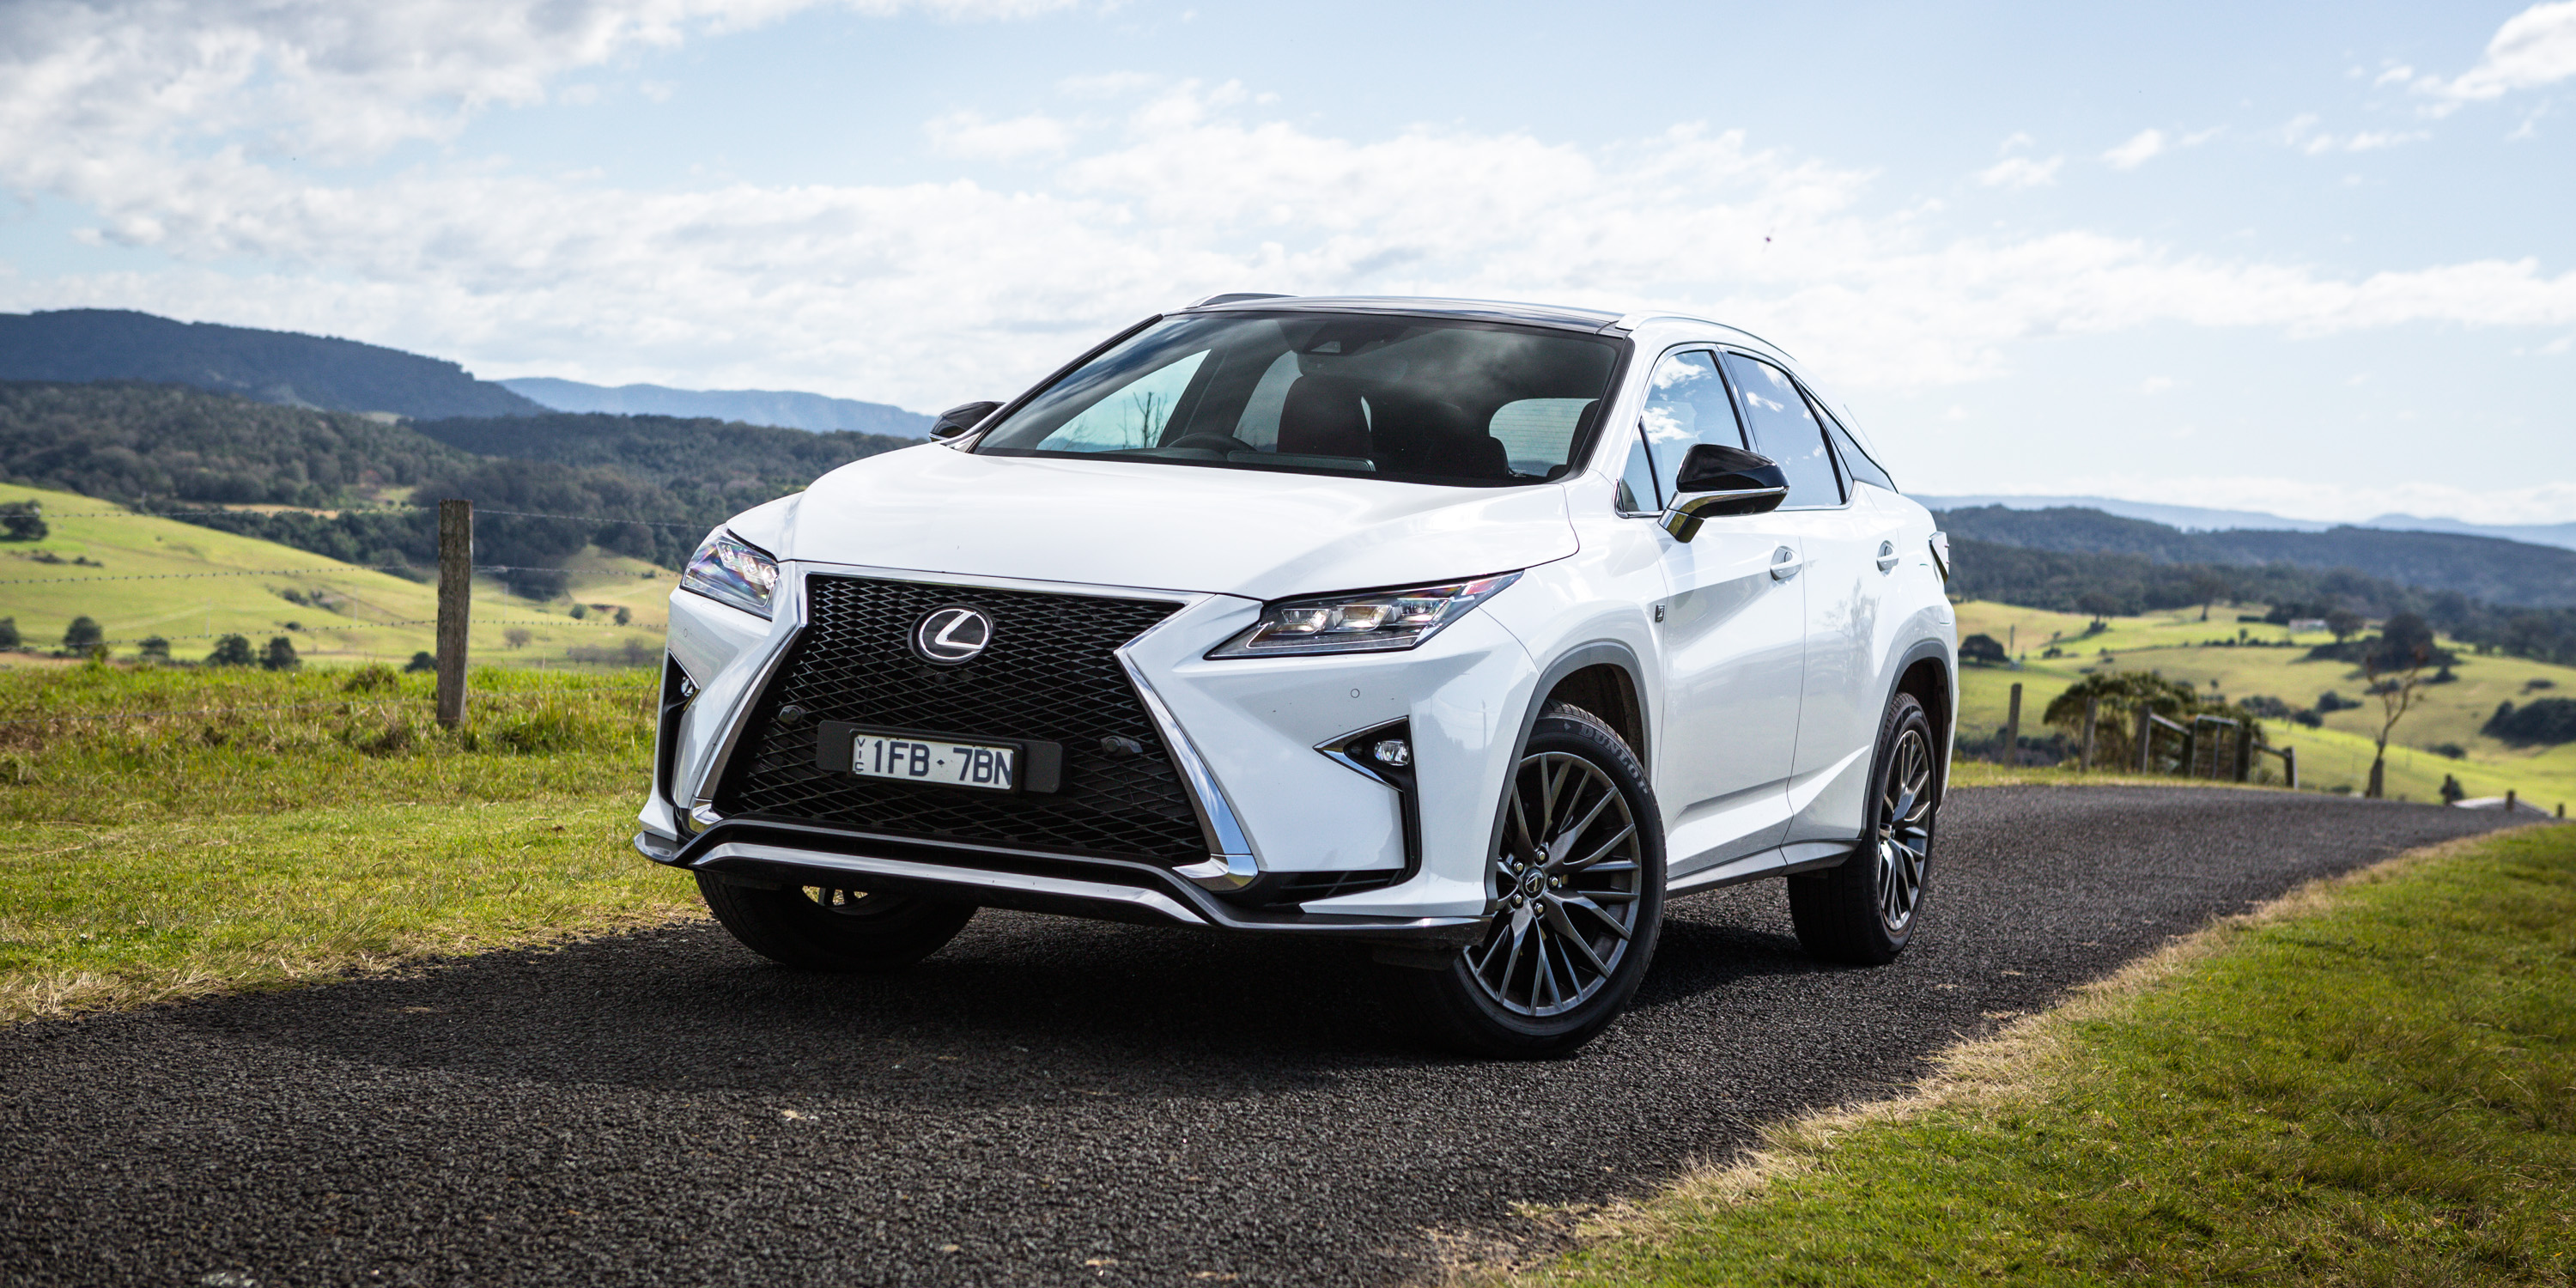 2016 Lexus RX350 F Sport Review - Photos